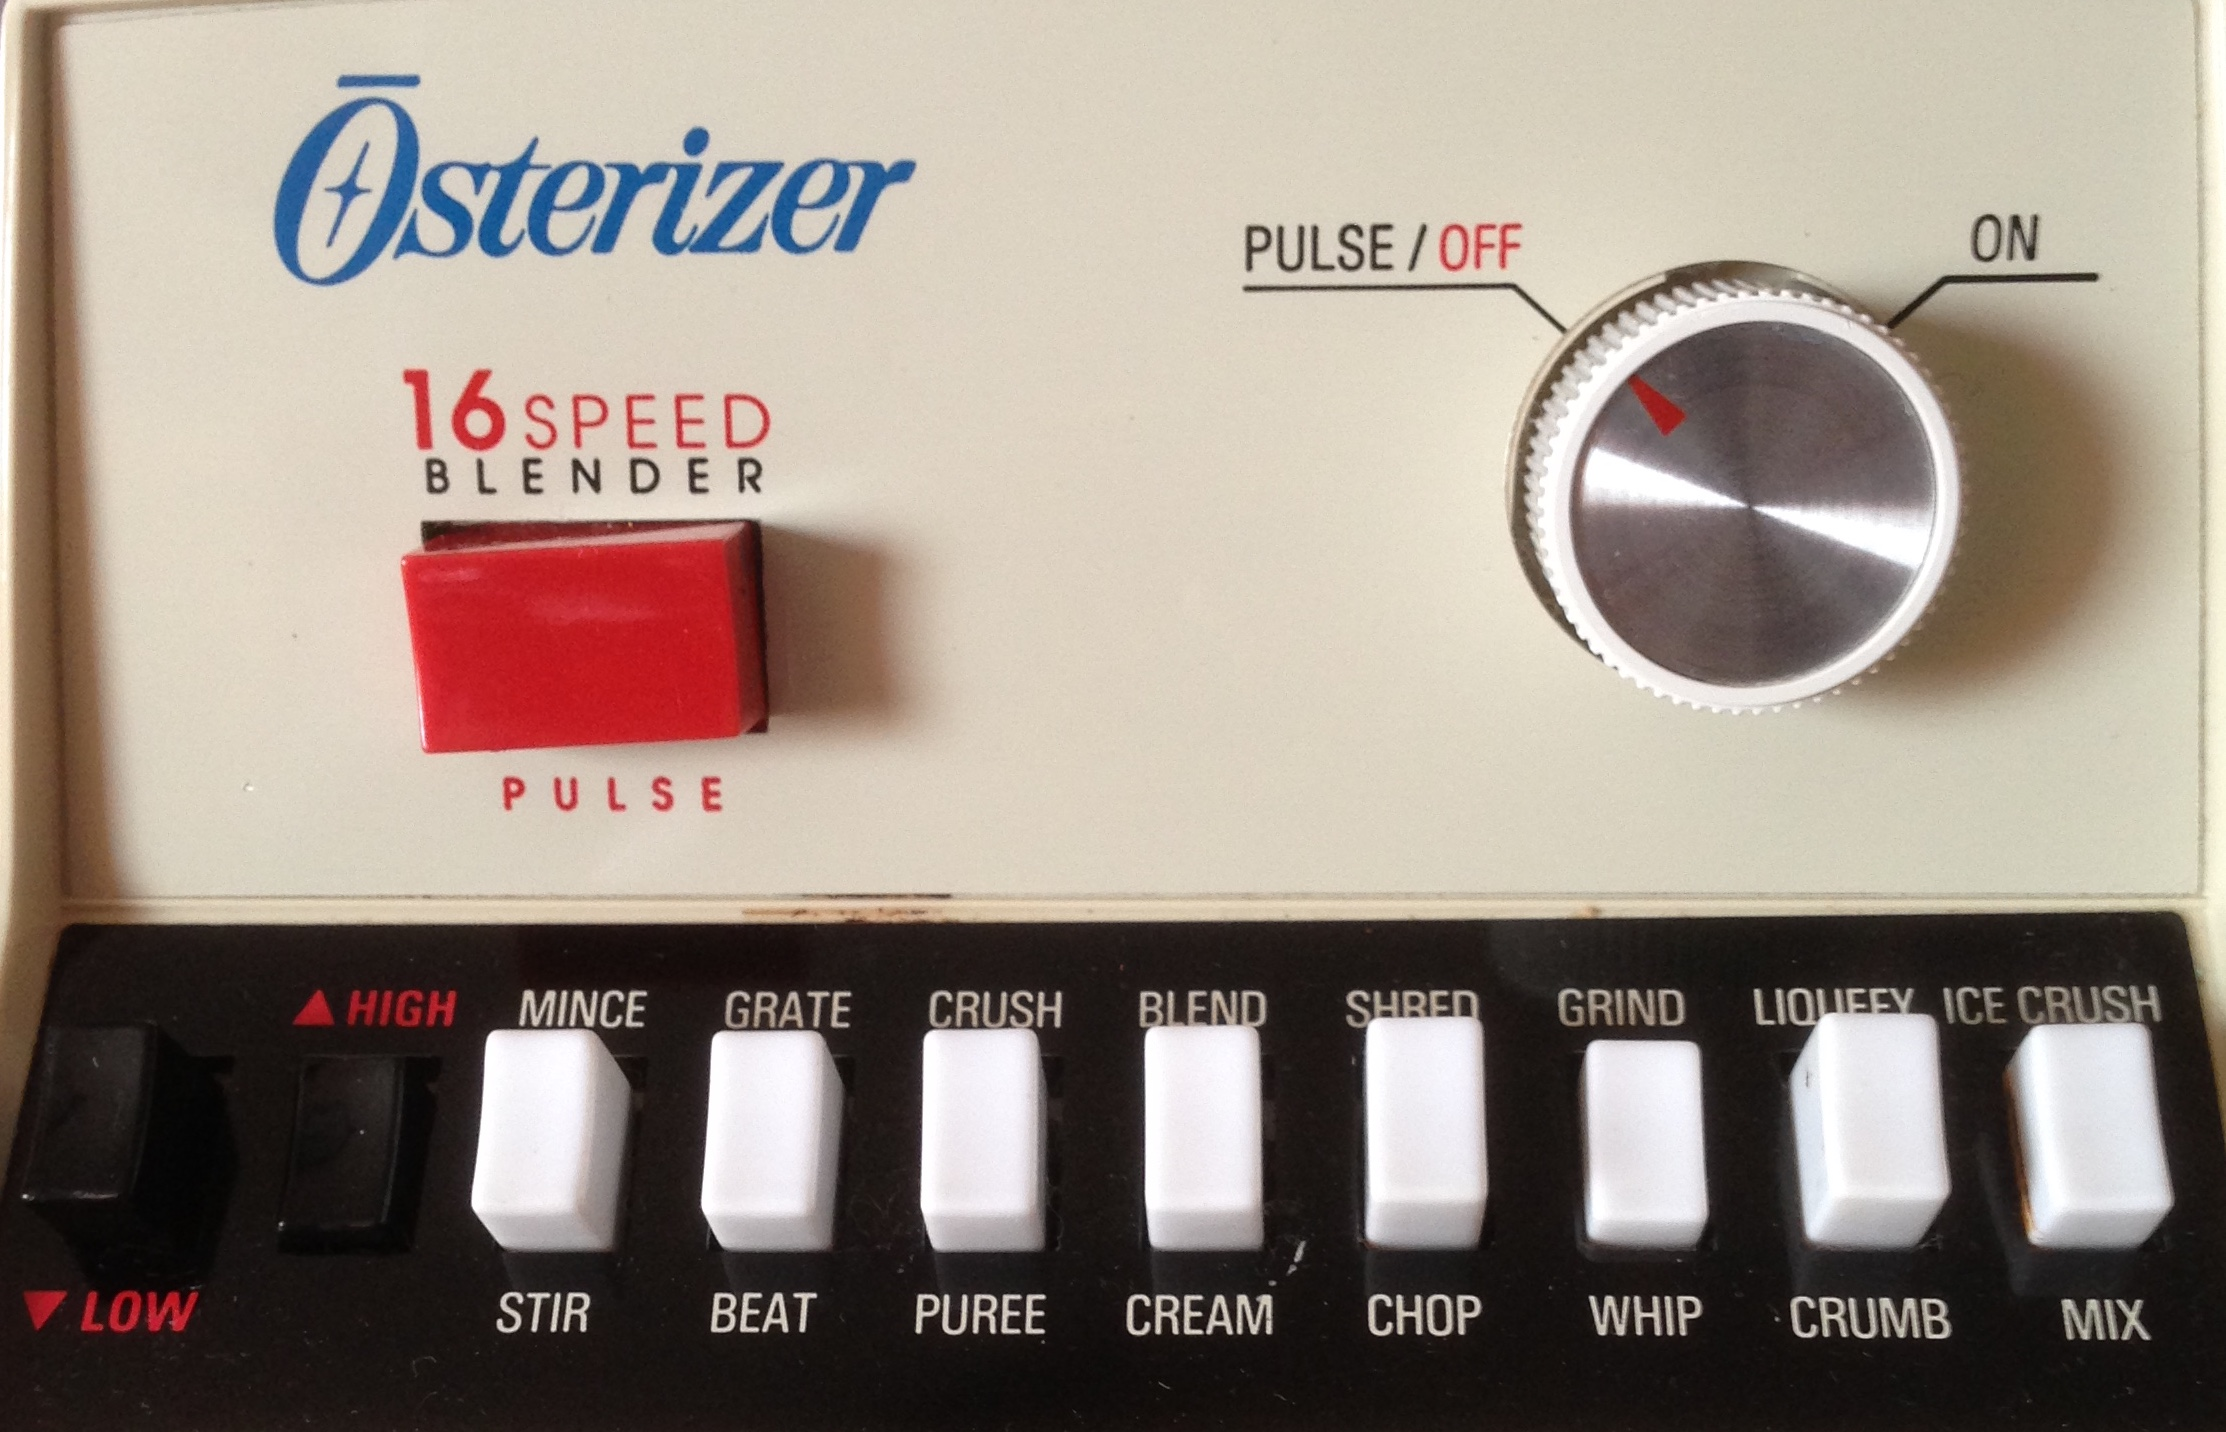 oster2